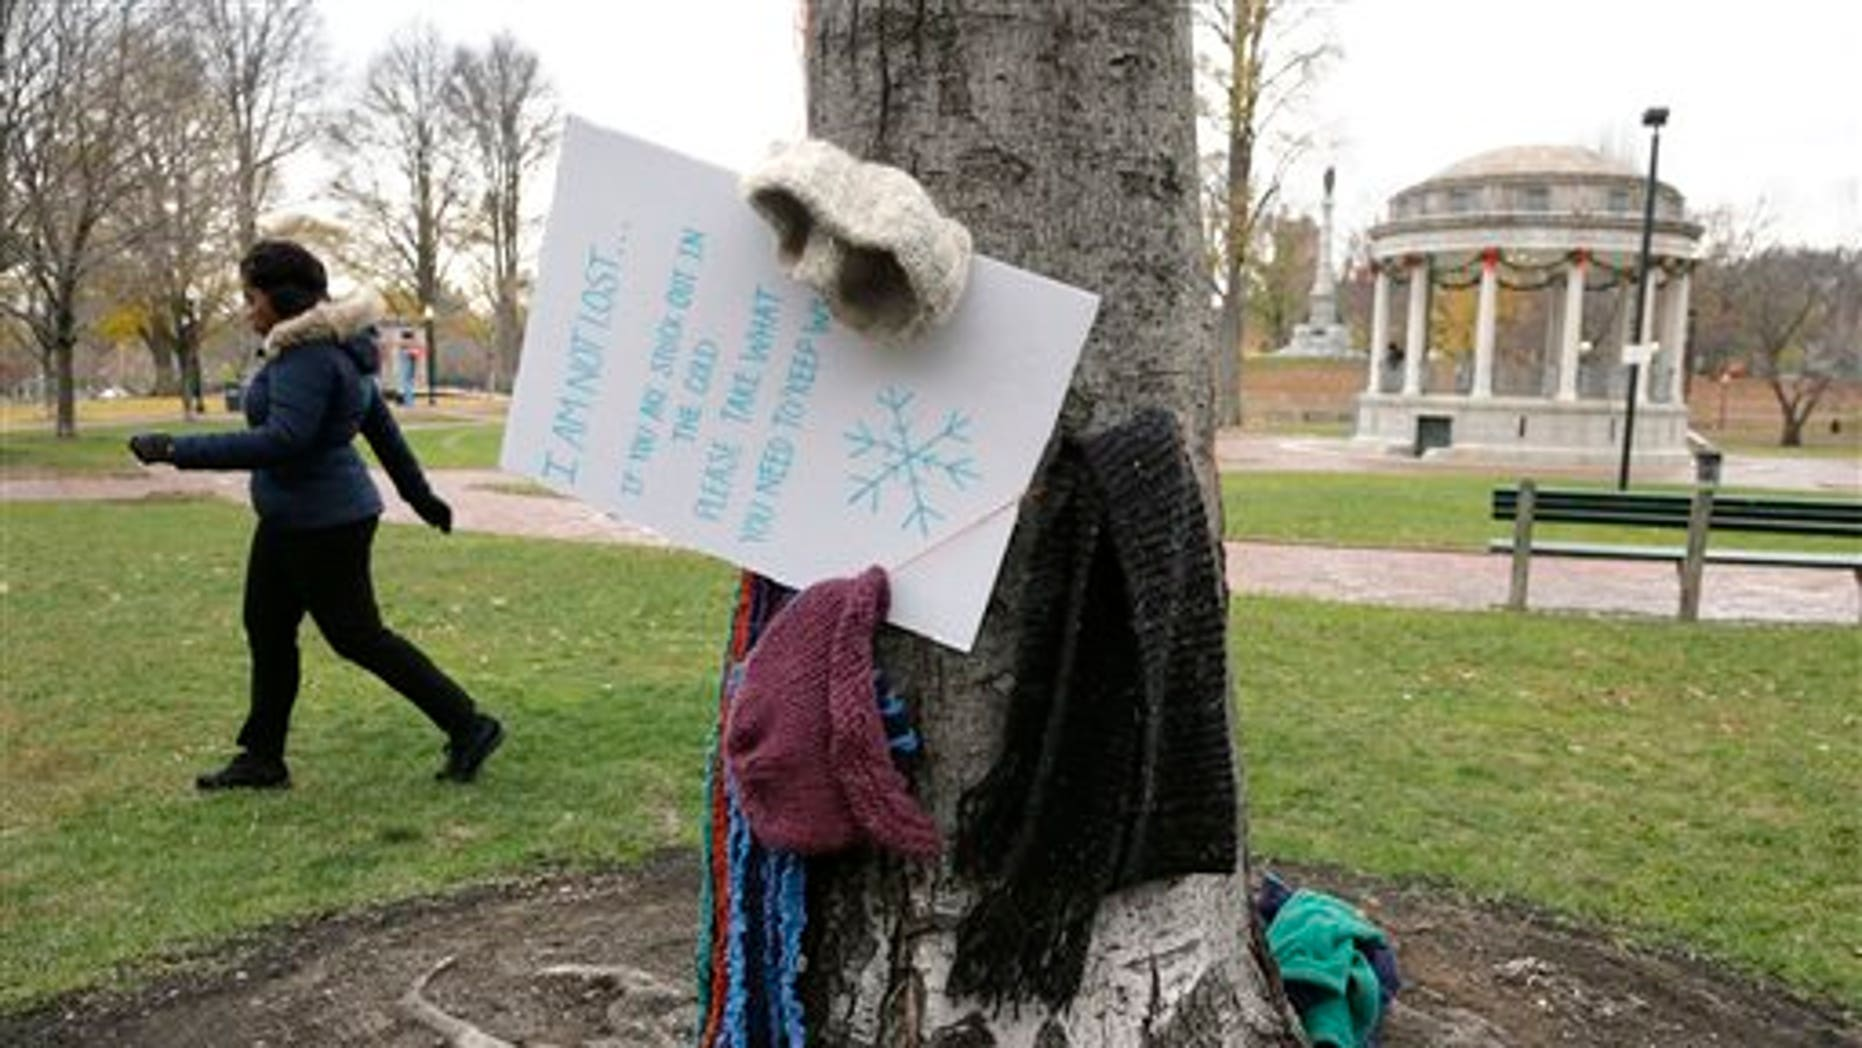 Hats and scarves hang on a tree near a sign that invites people in need to take them to keep warm, on the Boston Common Tuesday, Dec. 8, 2015, in Boston. A Good Samaritan has been hanging the cold weather items, as well as coats, gloves, and mittens, for the needy on trees in the park, a gesture that's warming the hearts of passersby. (AP Photo/Steven Senne)